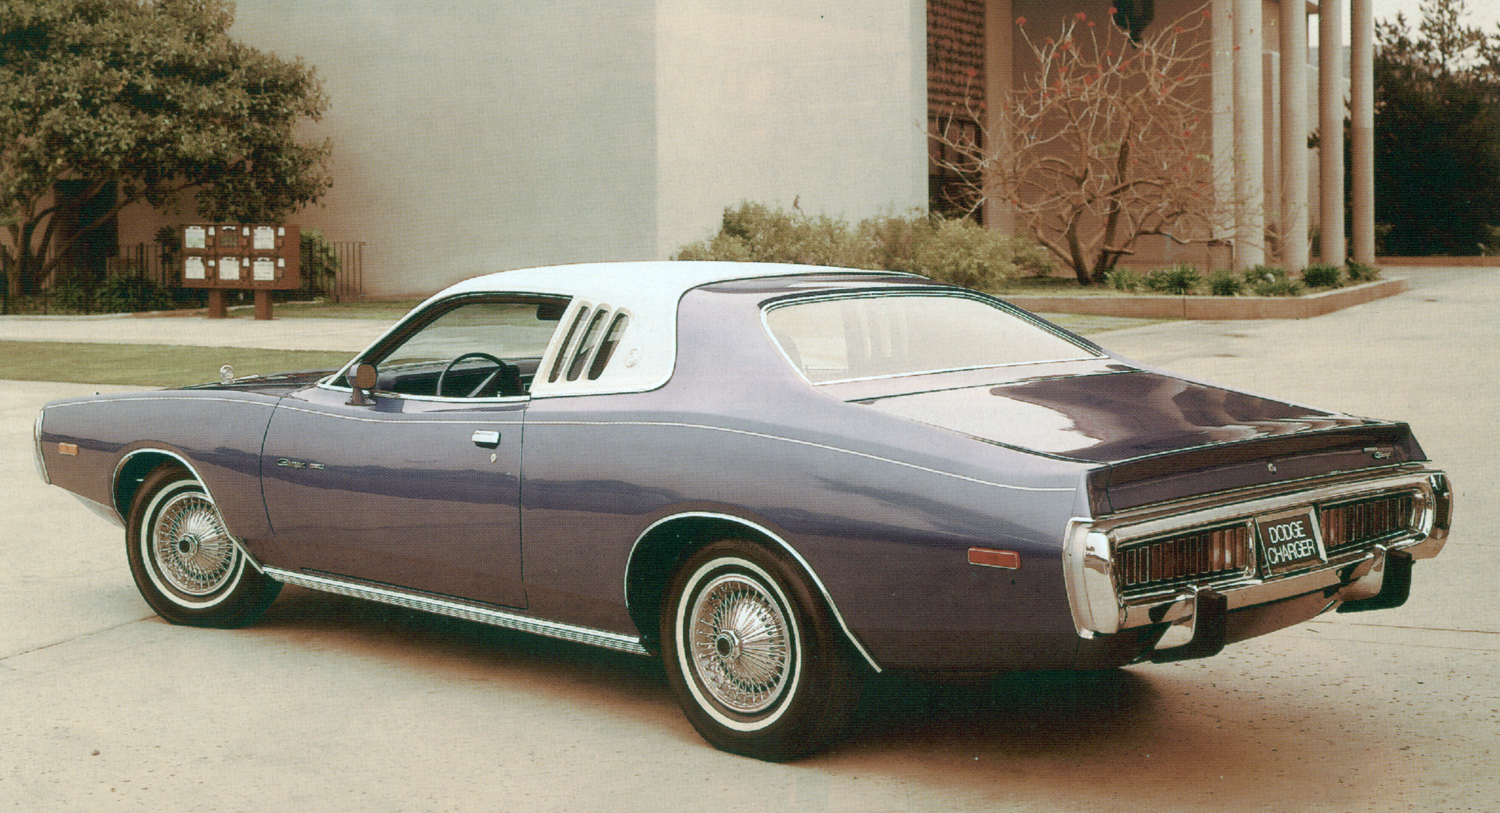 The 1972 1974 dodger charger muscle in a leisure suit